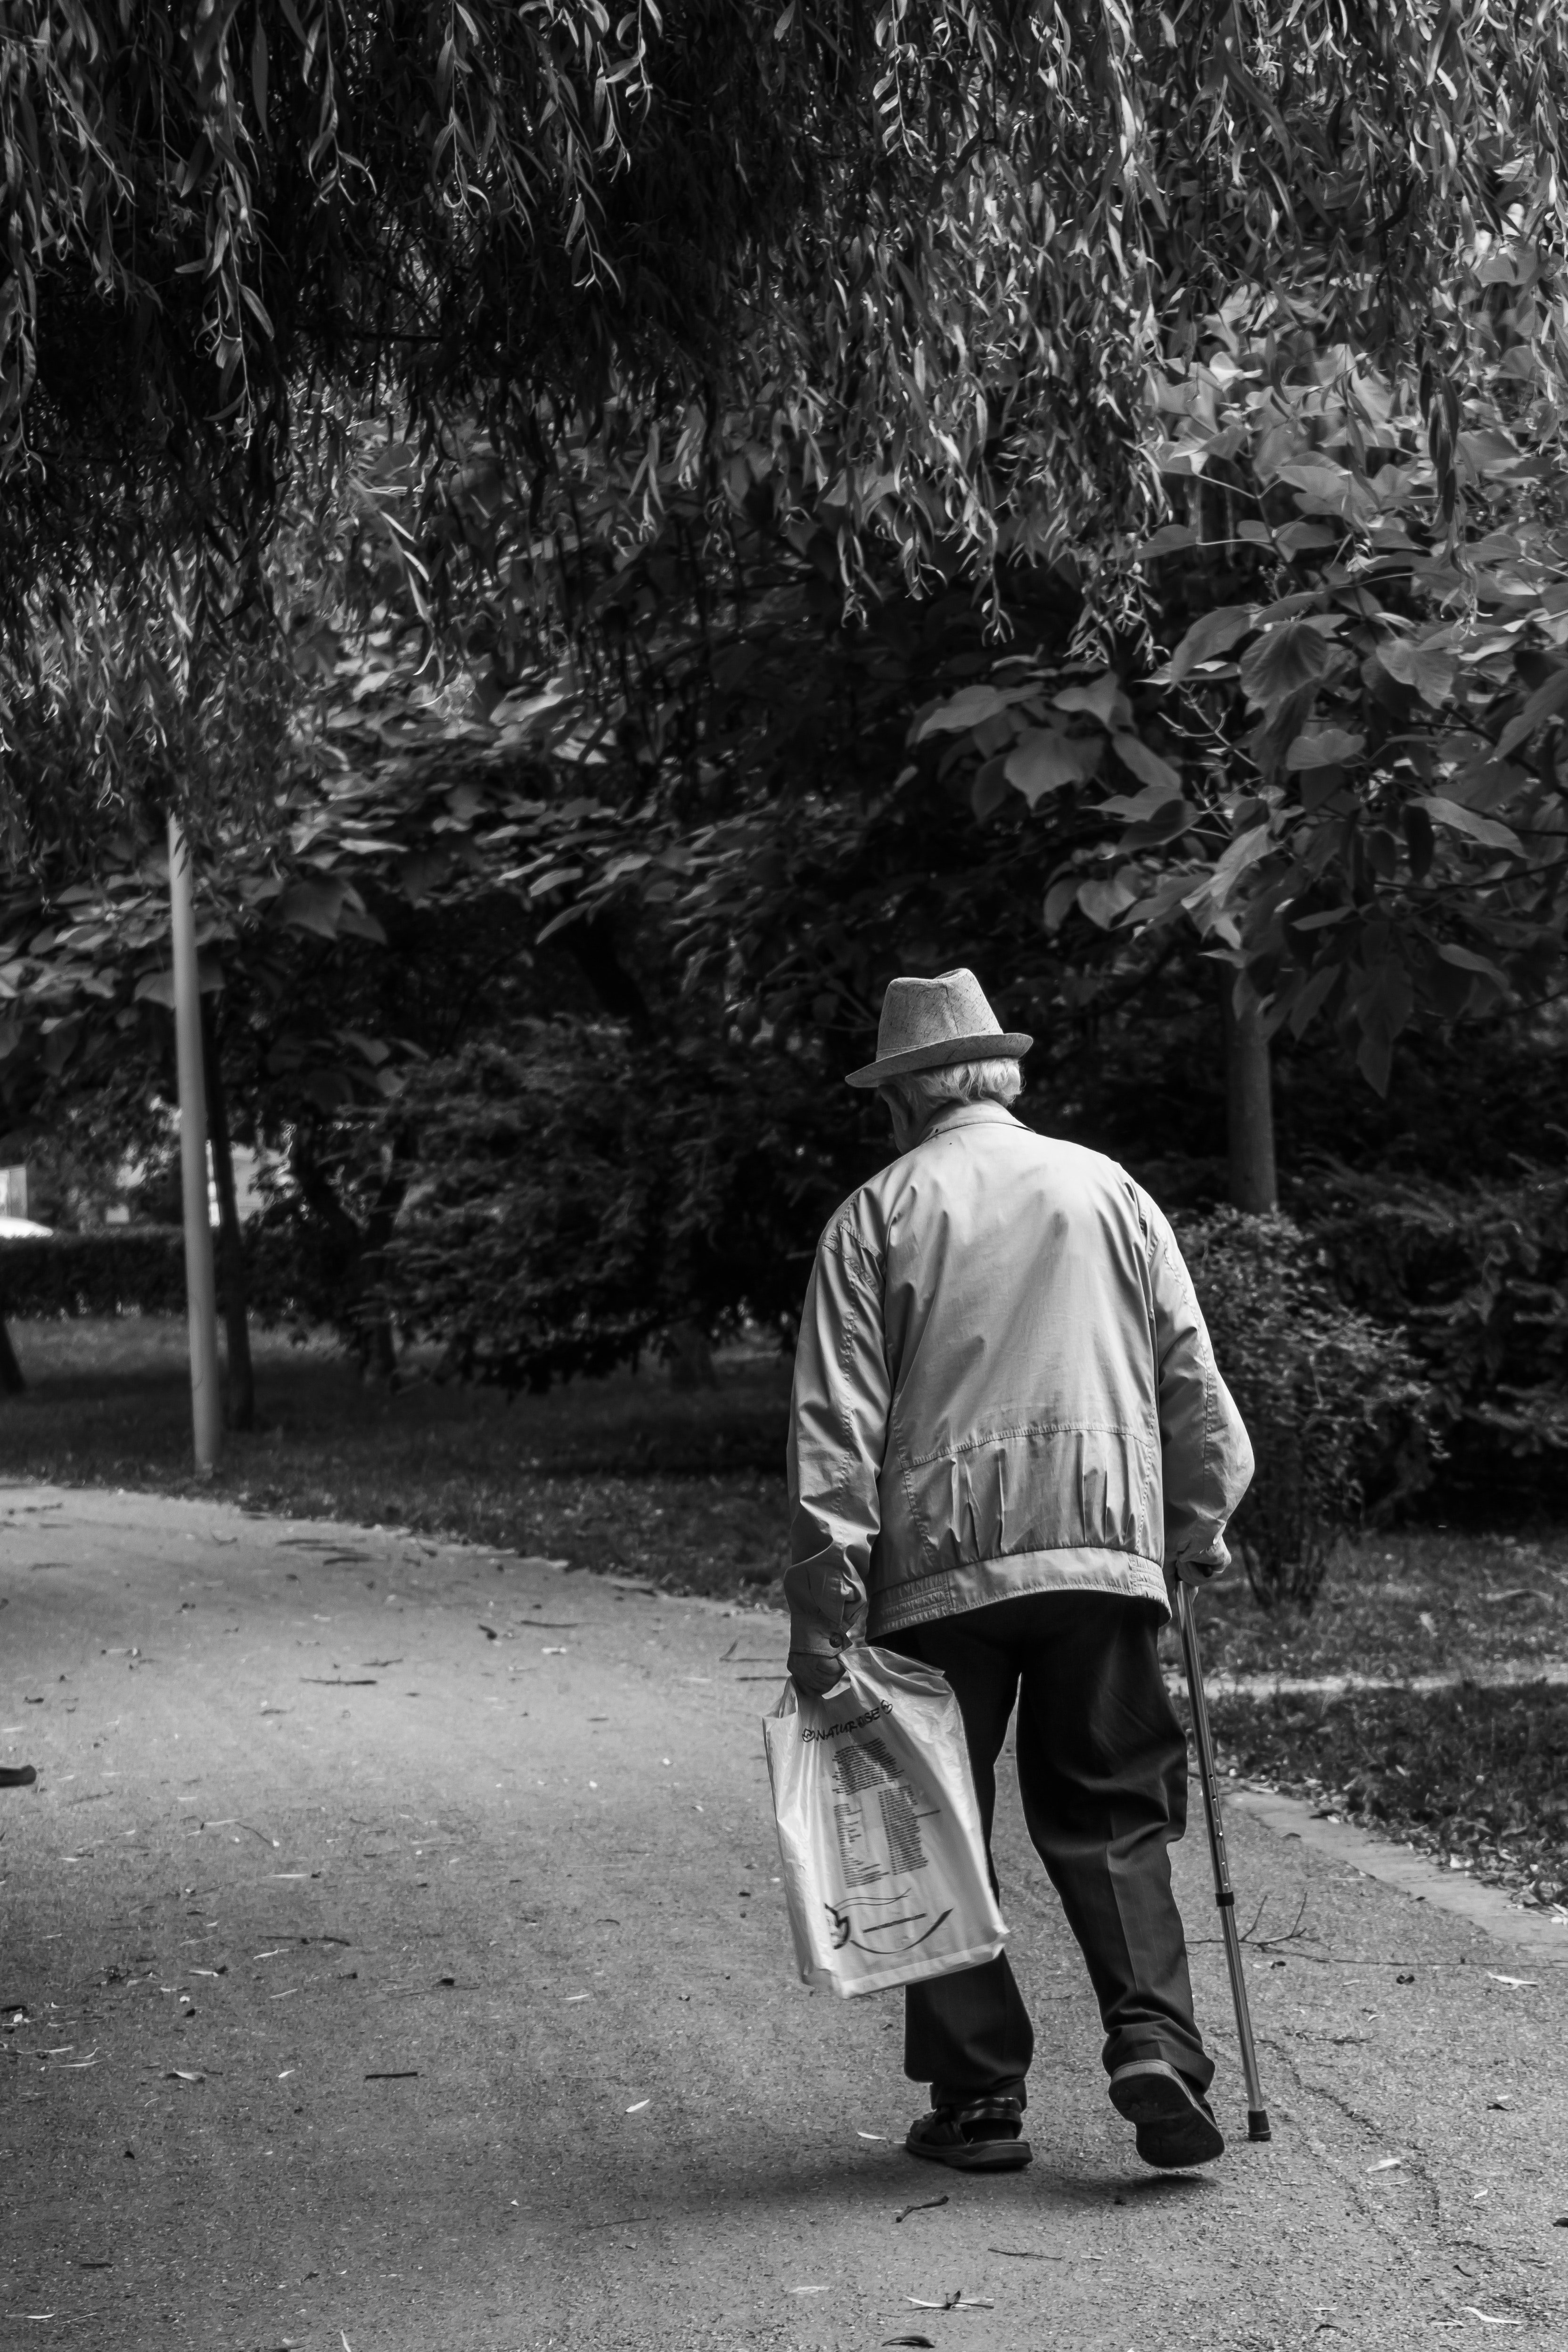 A man walking in the park wearing a hat.   Photo: Pexels